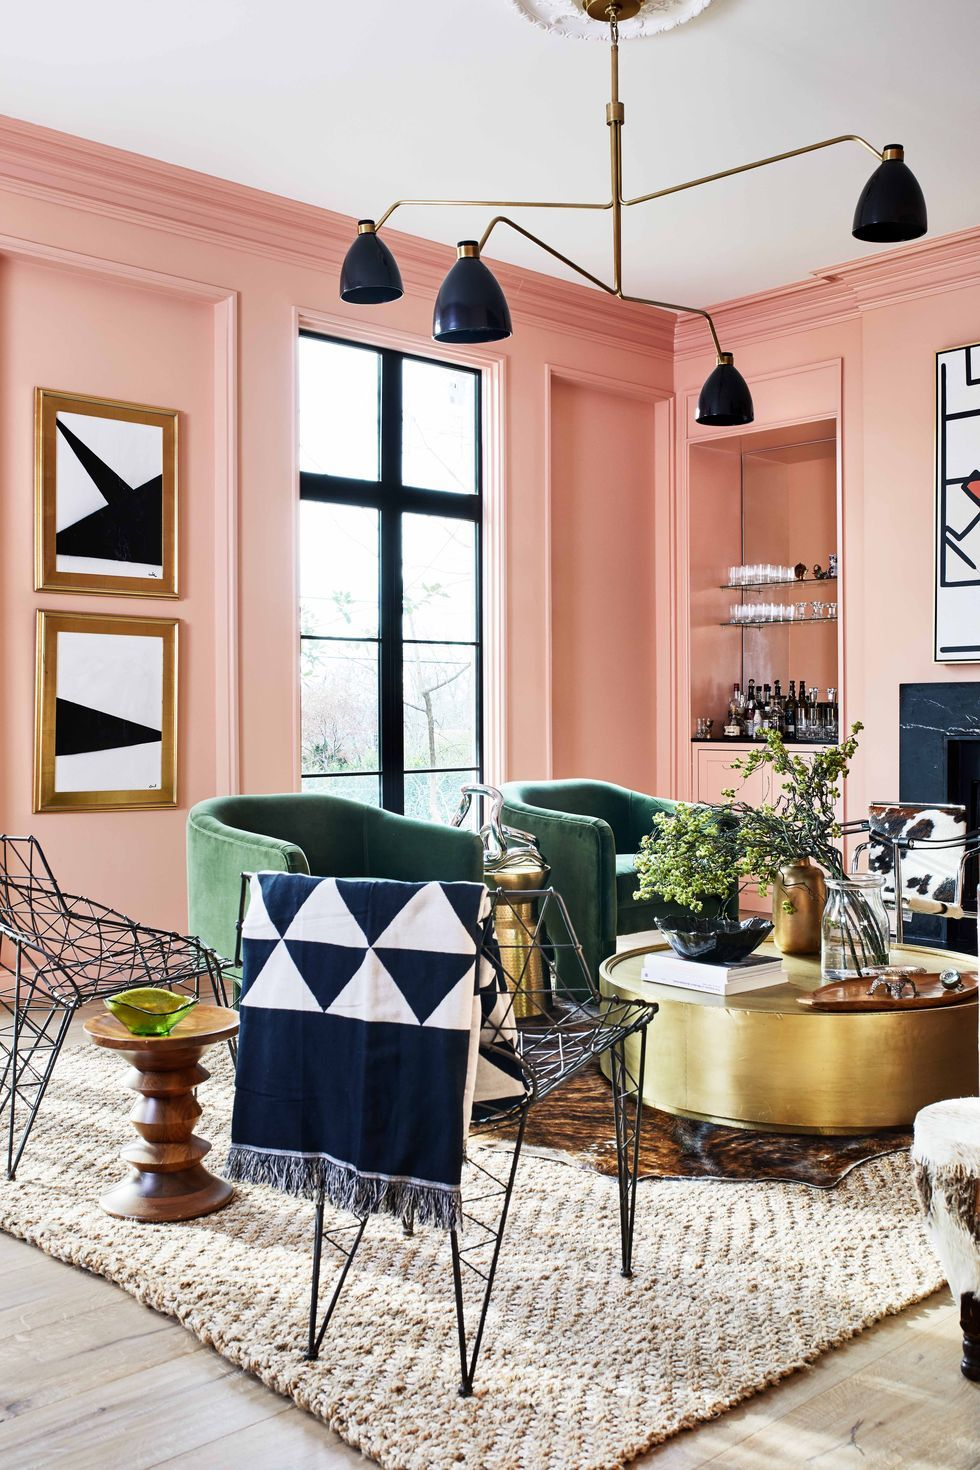 8 Creative Color Palettes For Your Living Room Decor _1